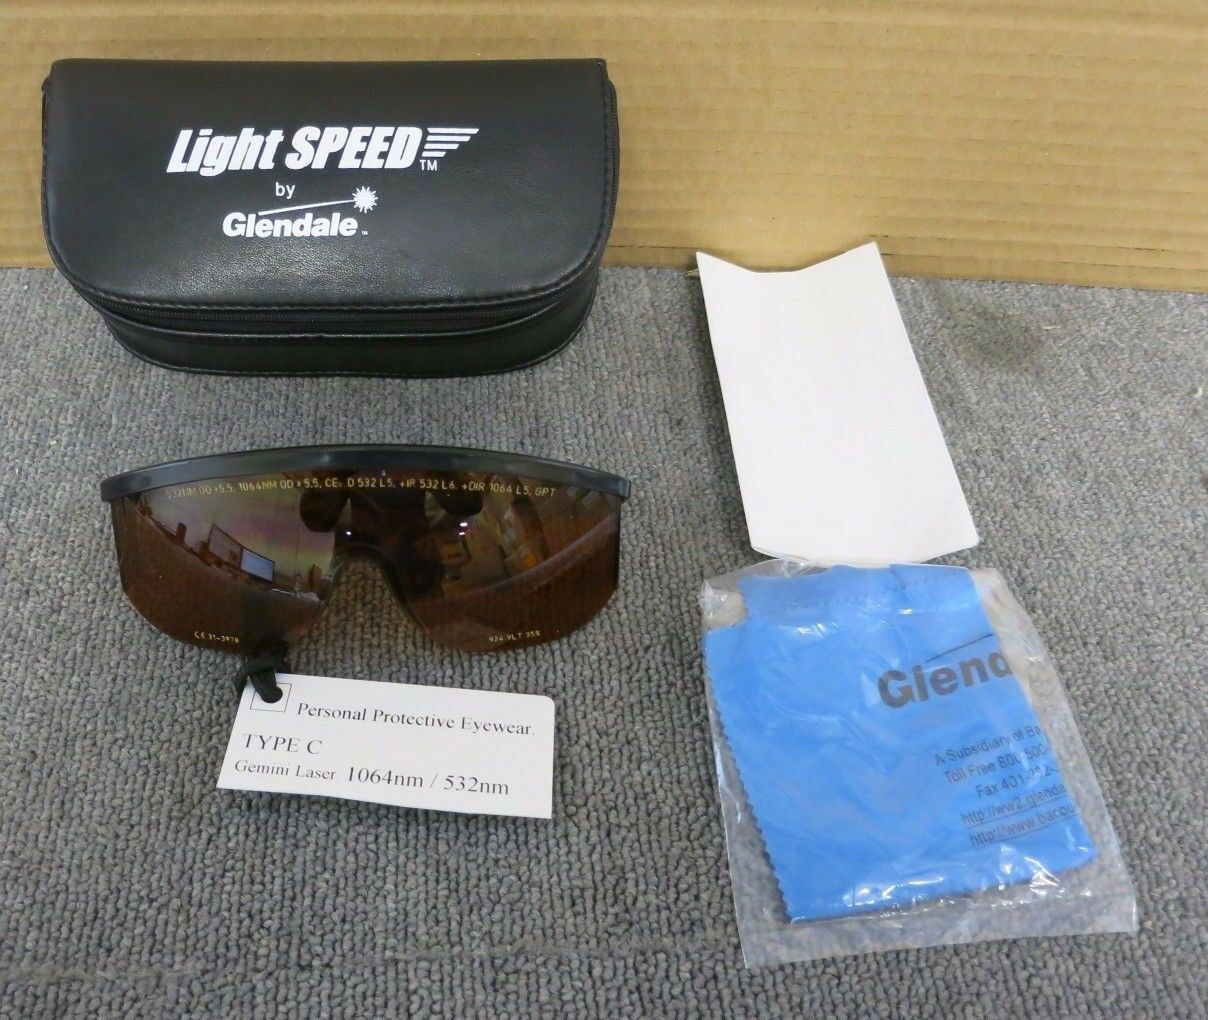 Glendale Light Speed Type C Laser Safety Goggles 1064nm   532nm For Gemini Laser